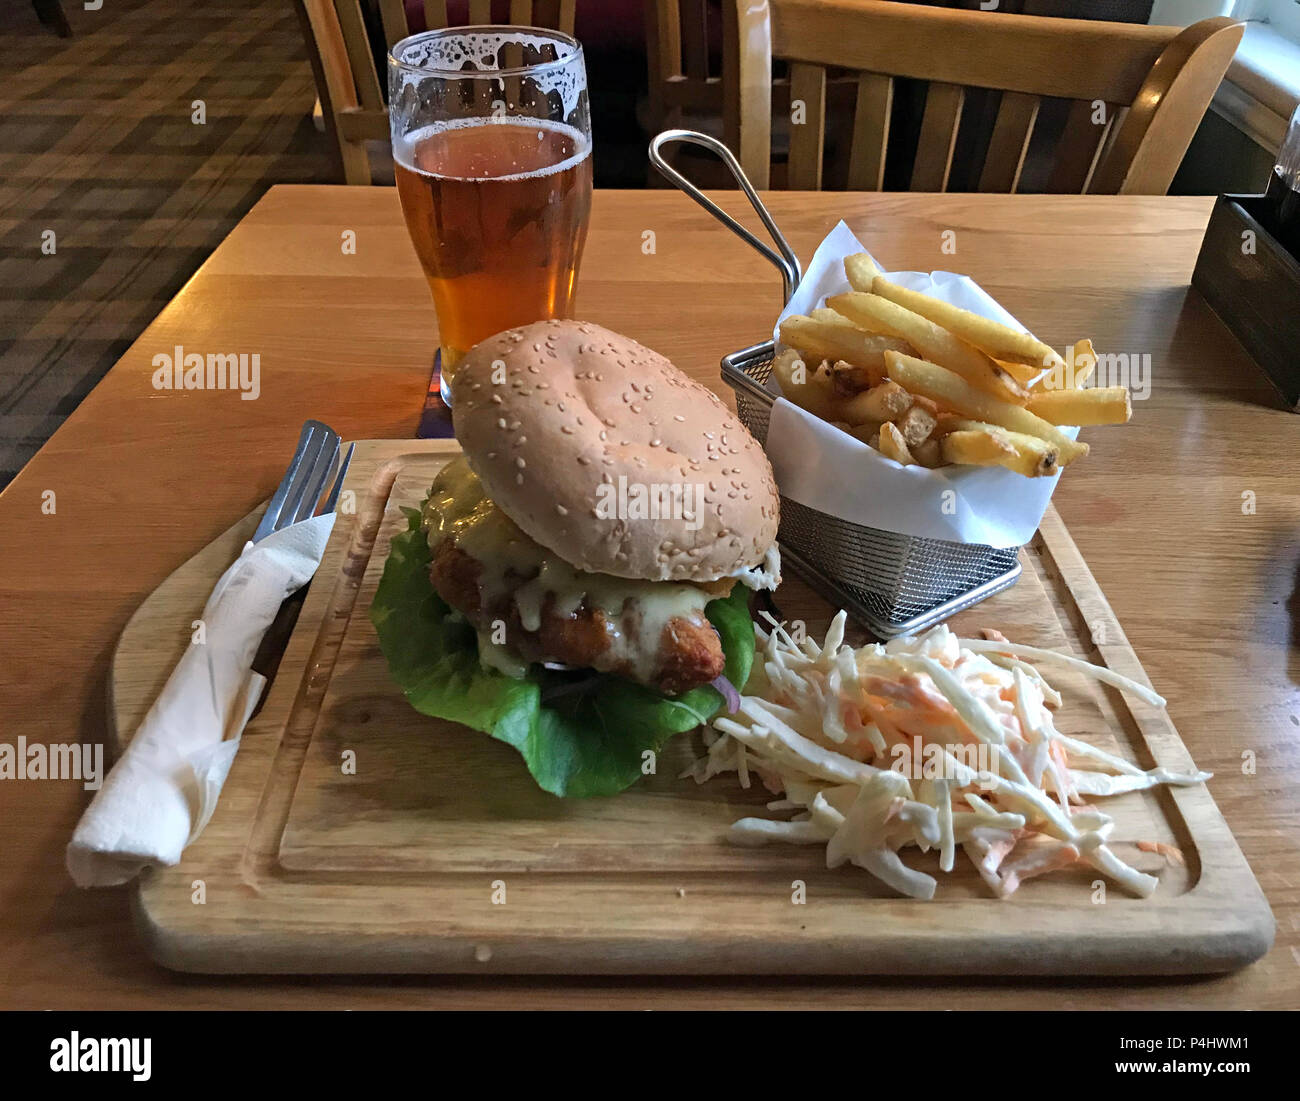 Chicken Burger meal with fries, coleslaw, and a pint in a traditional English pub, Somerset, South West England, UK Stock Photo